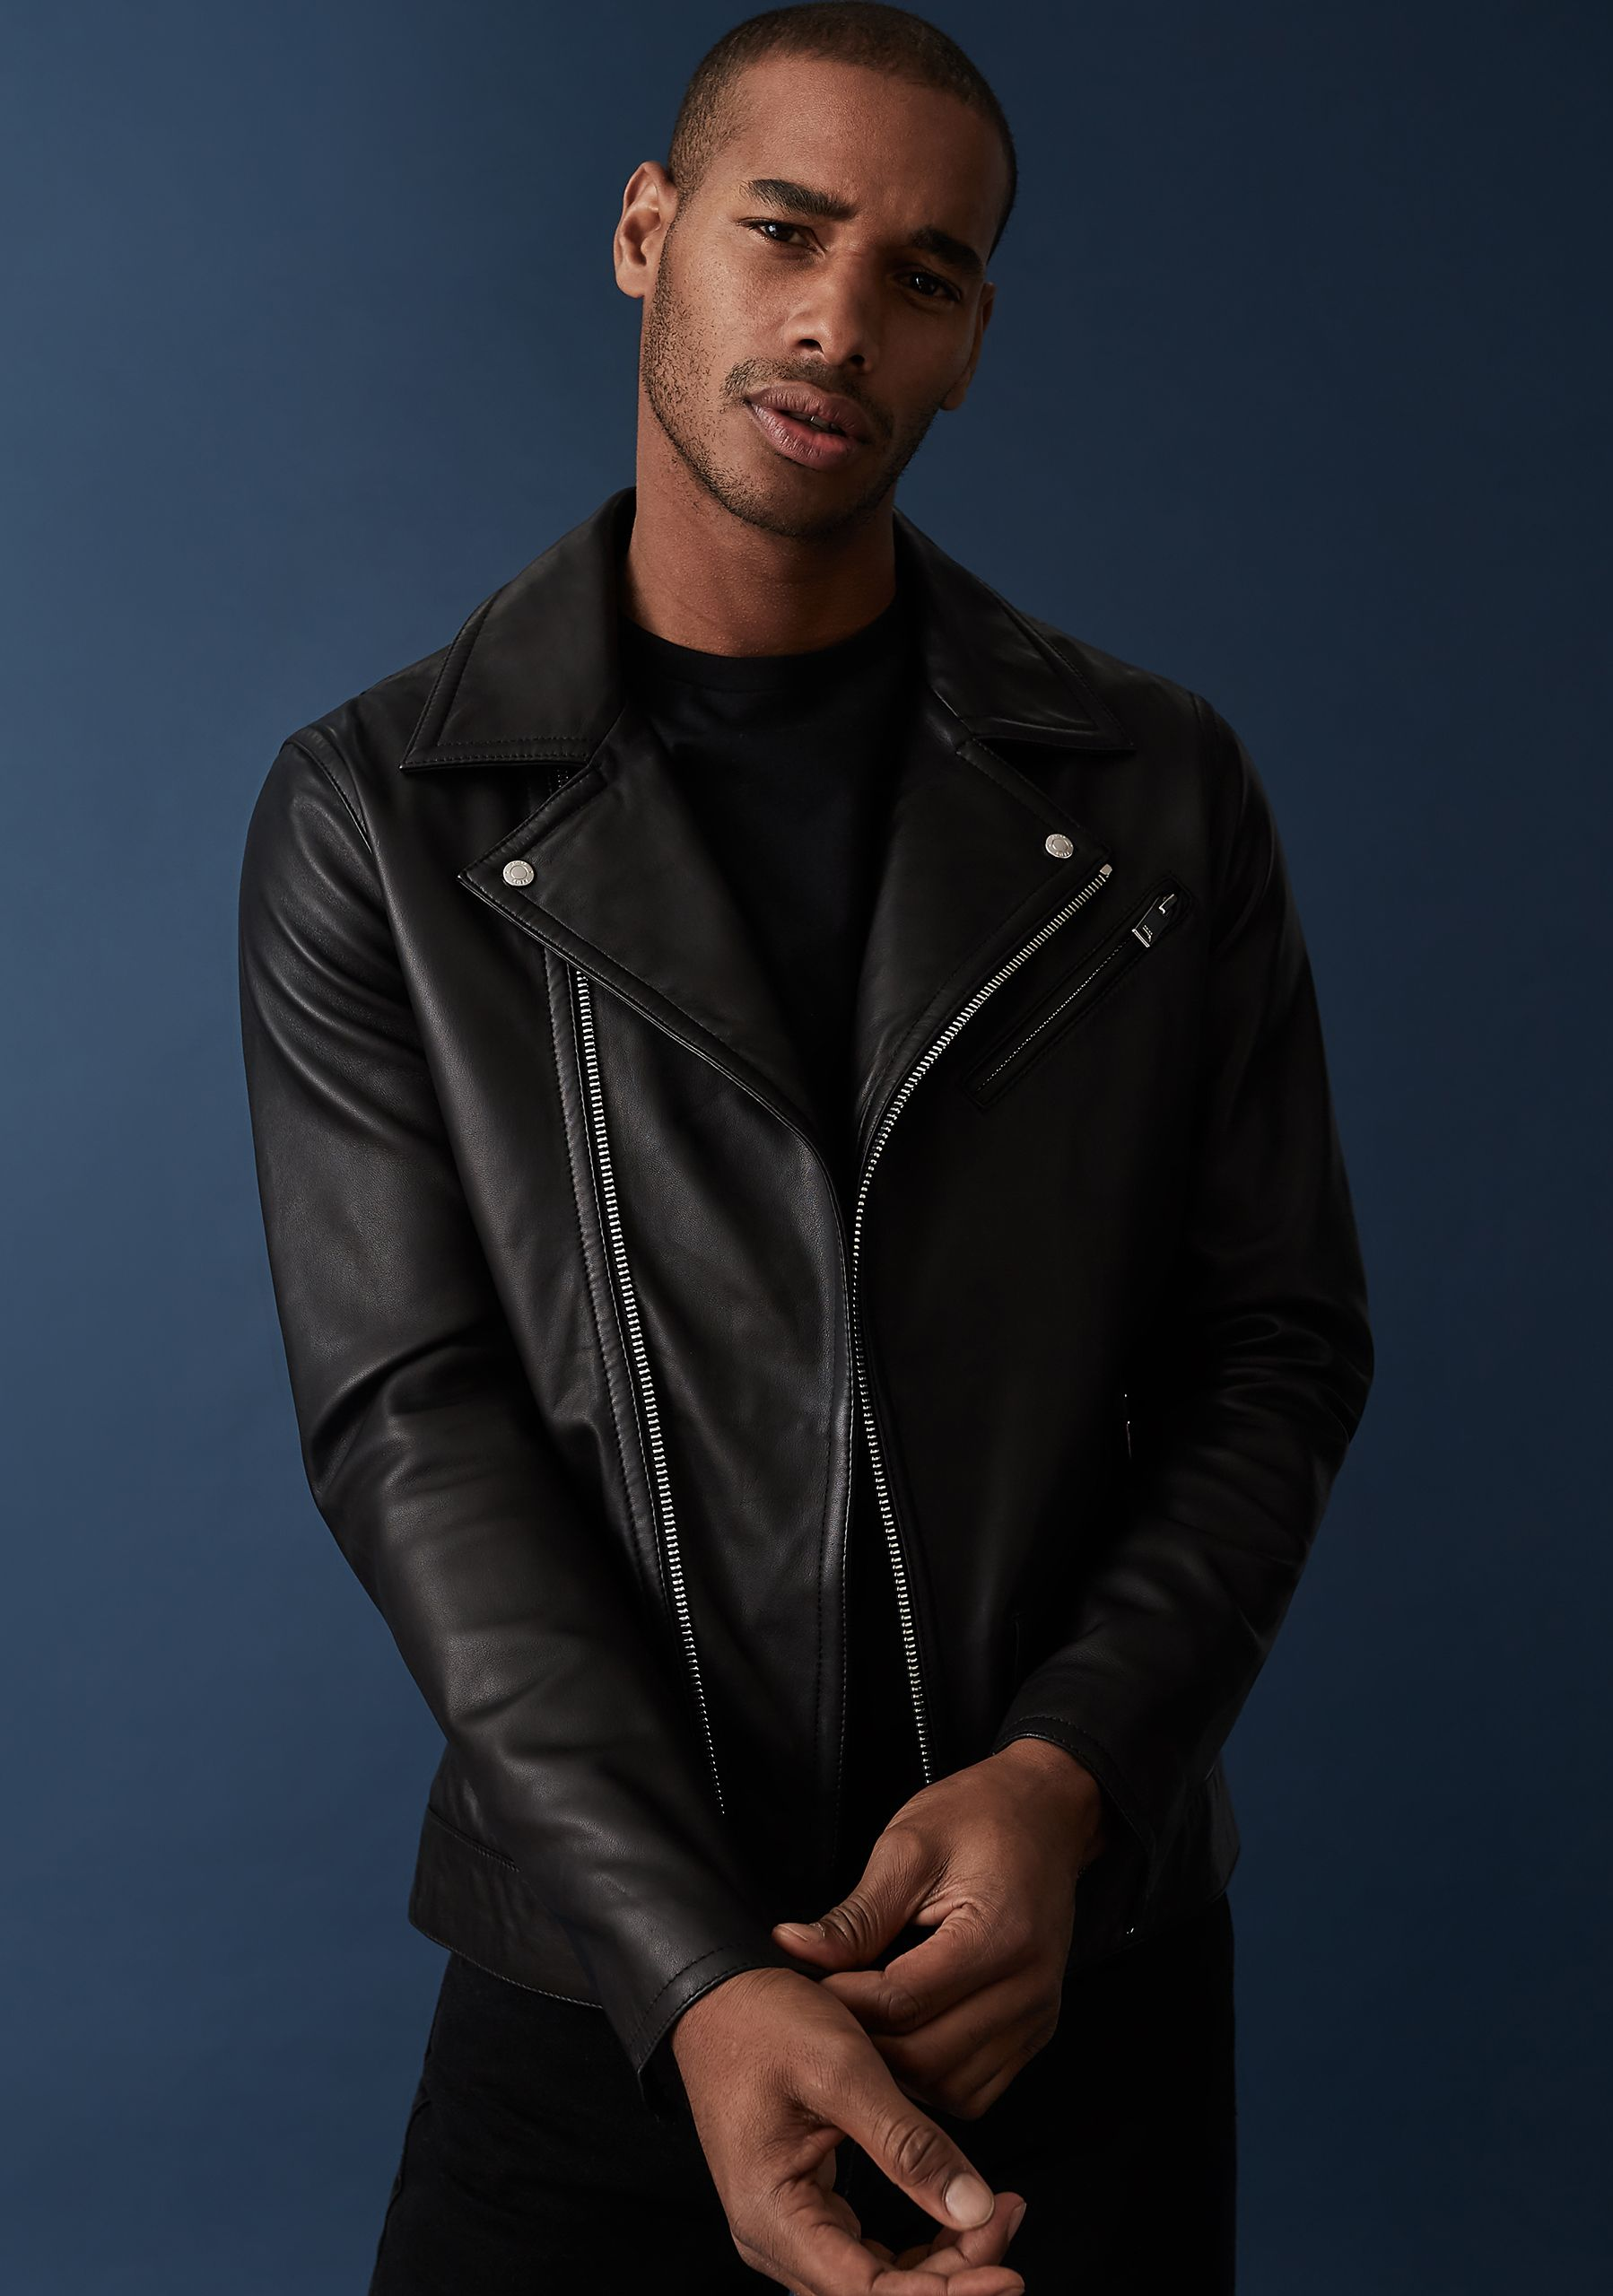 Pin By Rae Corey On Men In Leather Jacket In 2020 Reiss Leather Jacket Leather Jacket Men Jackets [ 2559 x 1798 Pixel ]